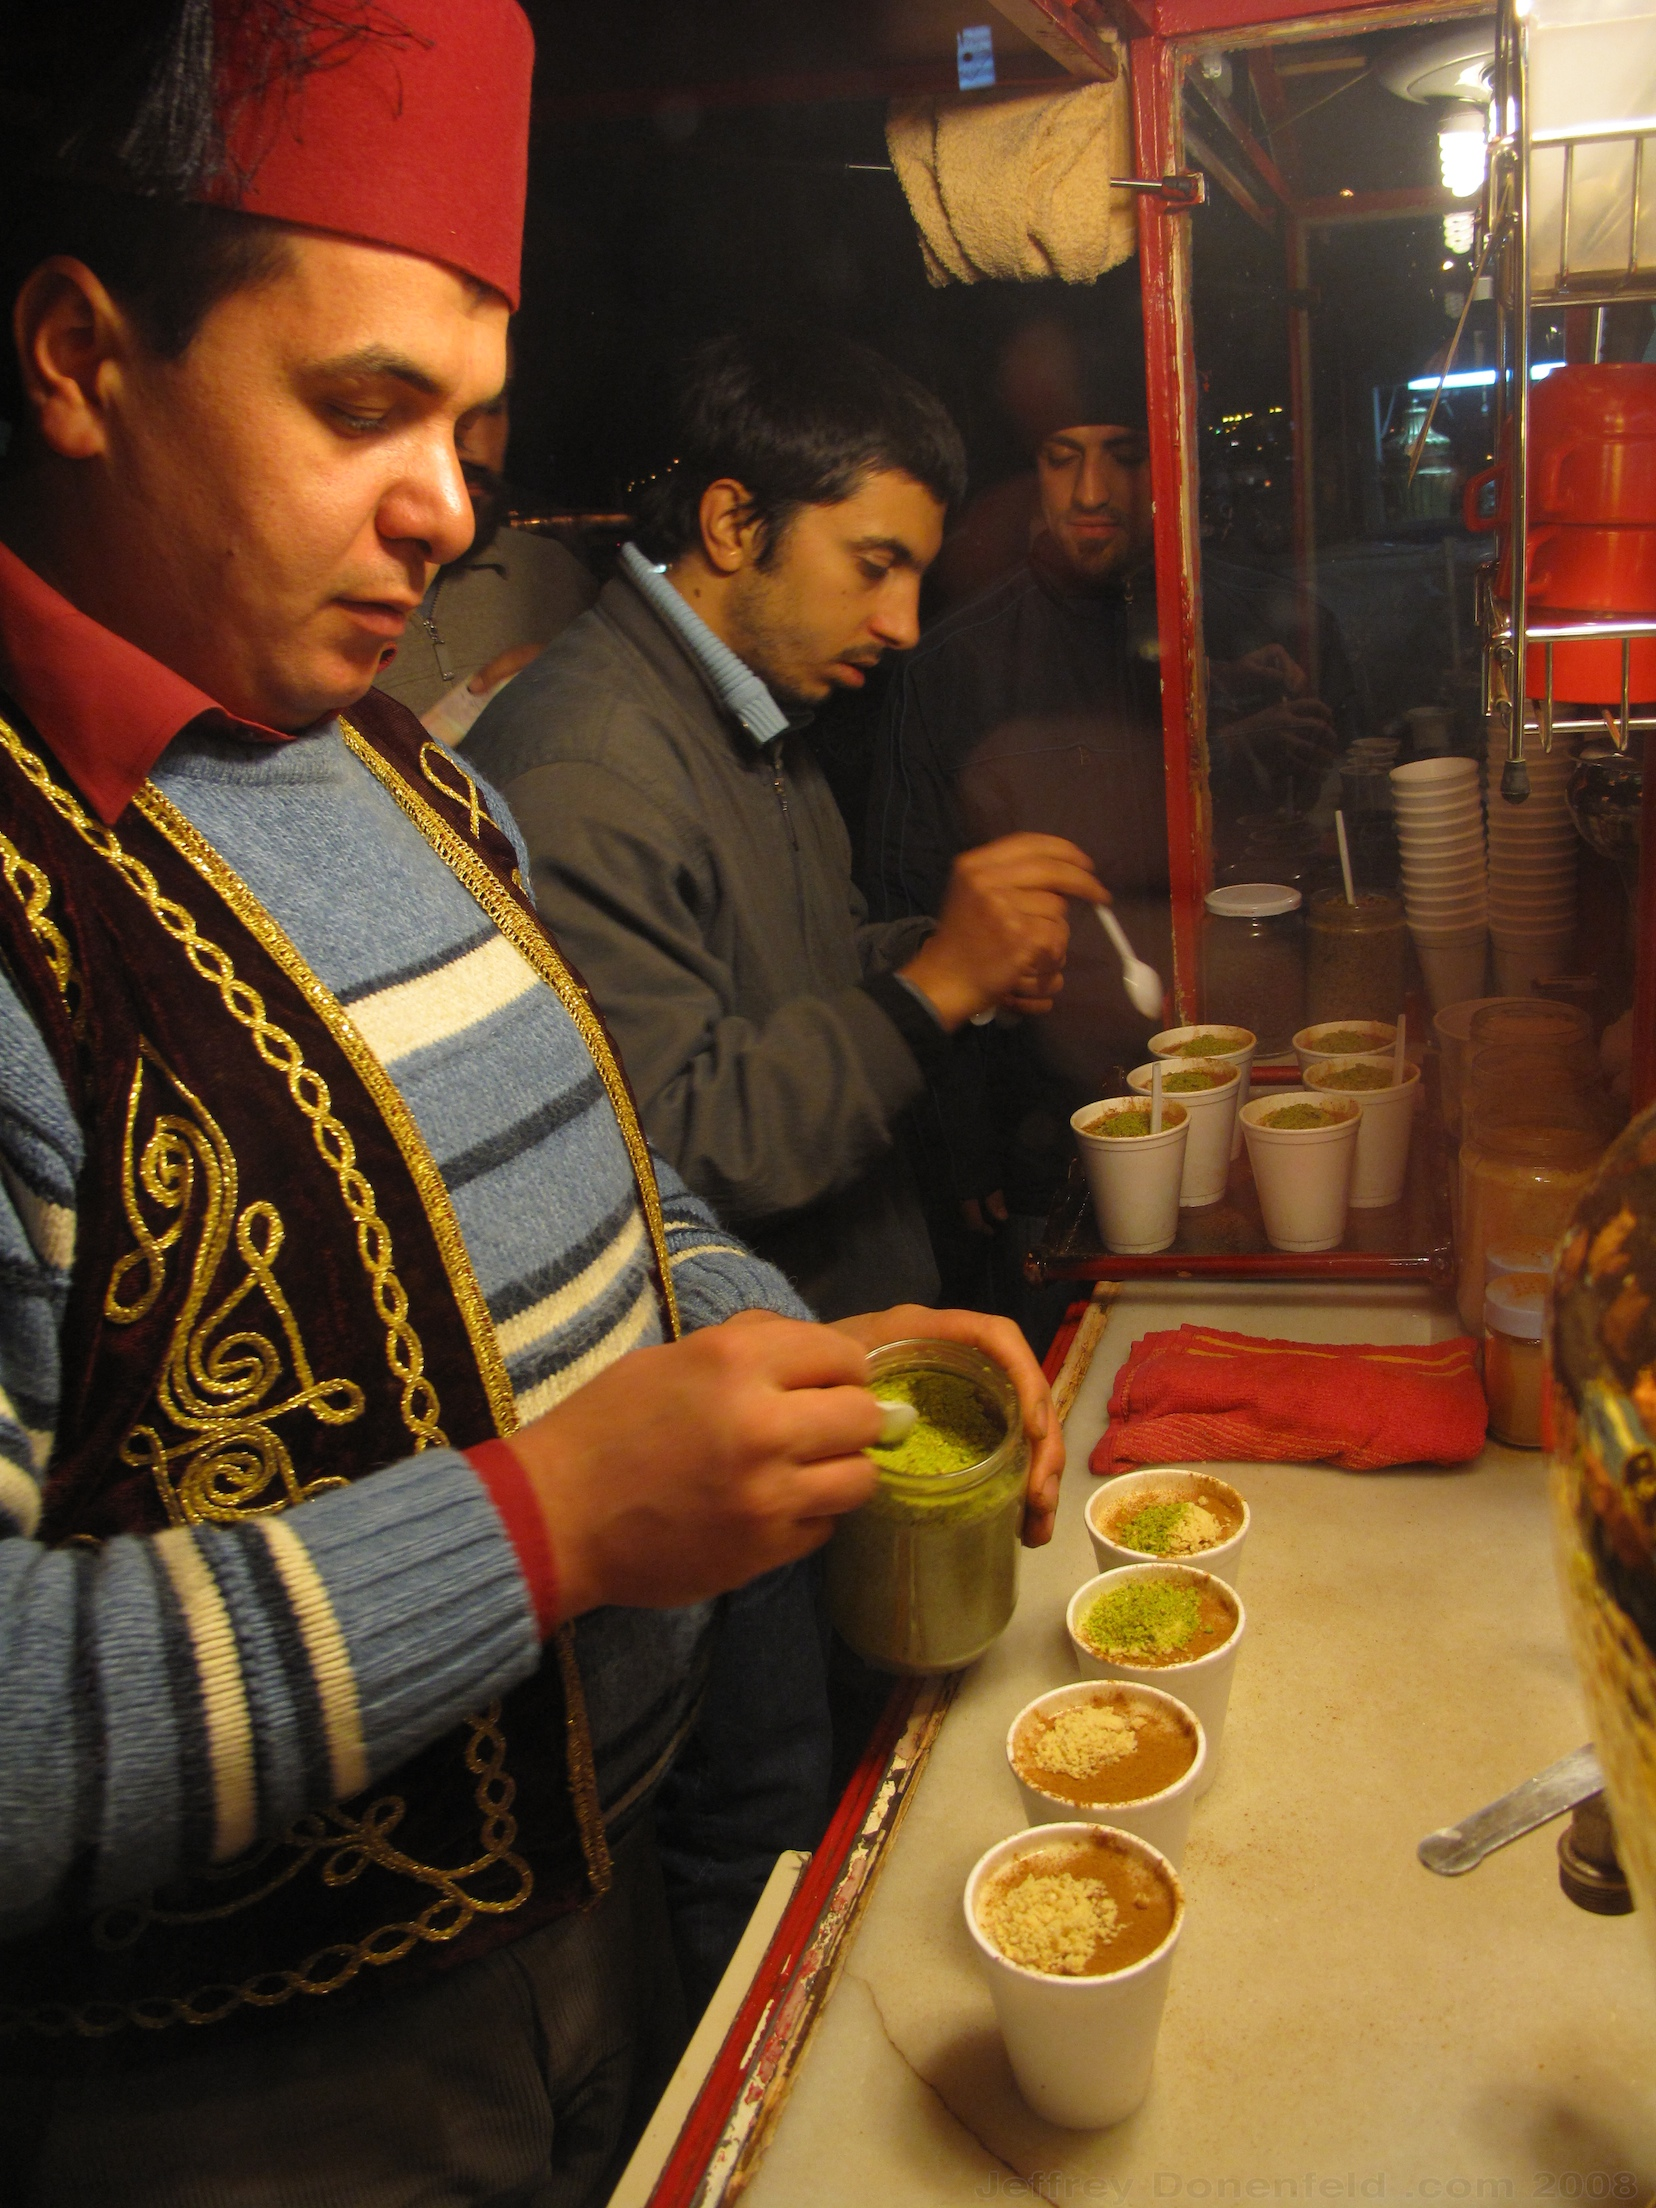 Getting Sahlep in Antakya